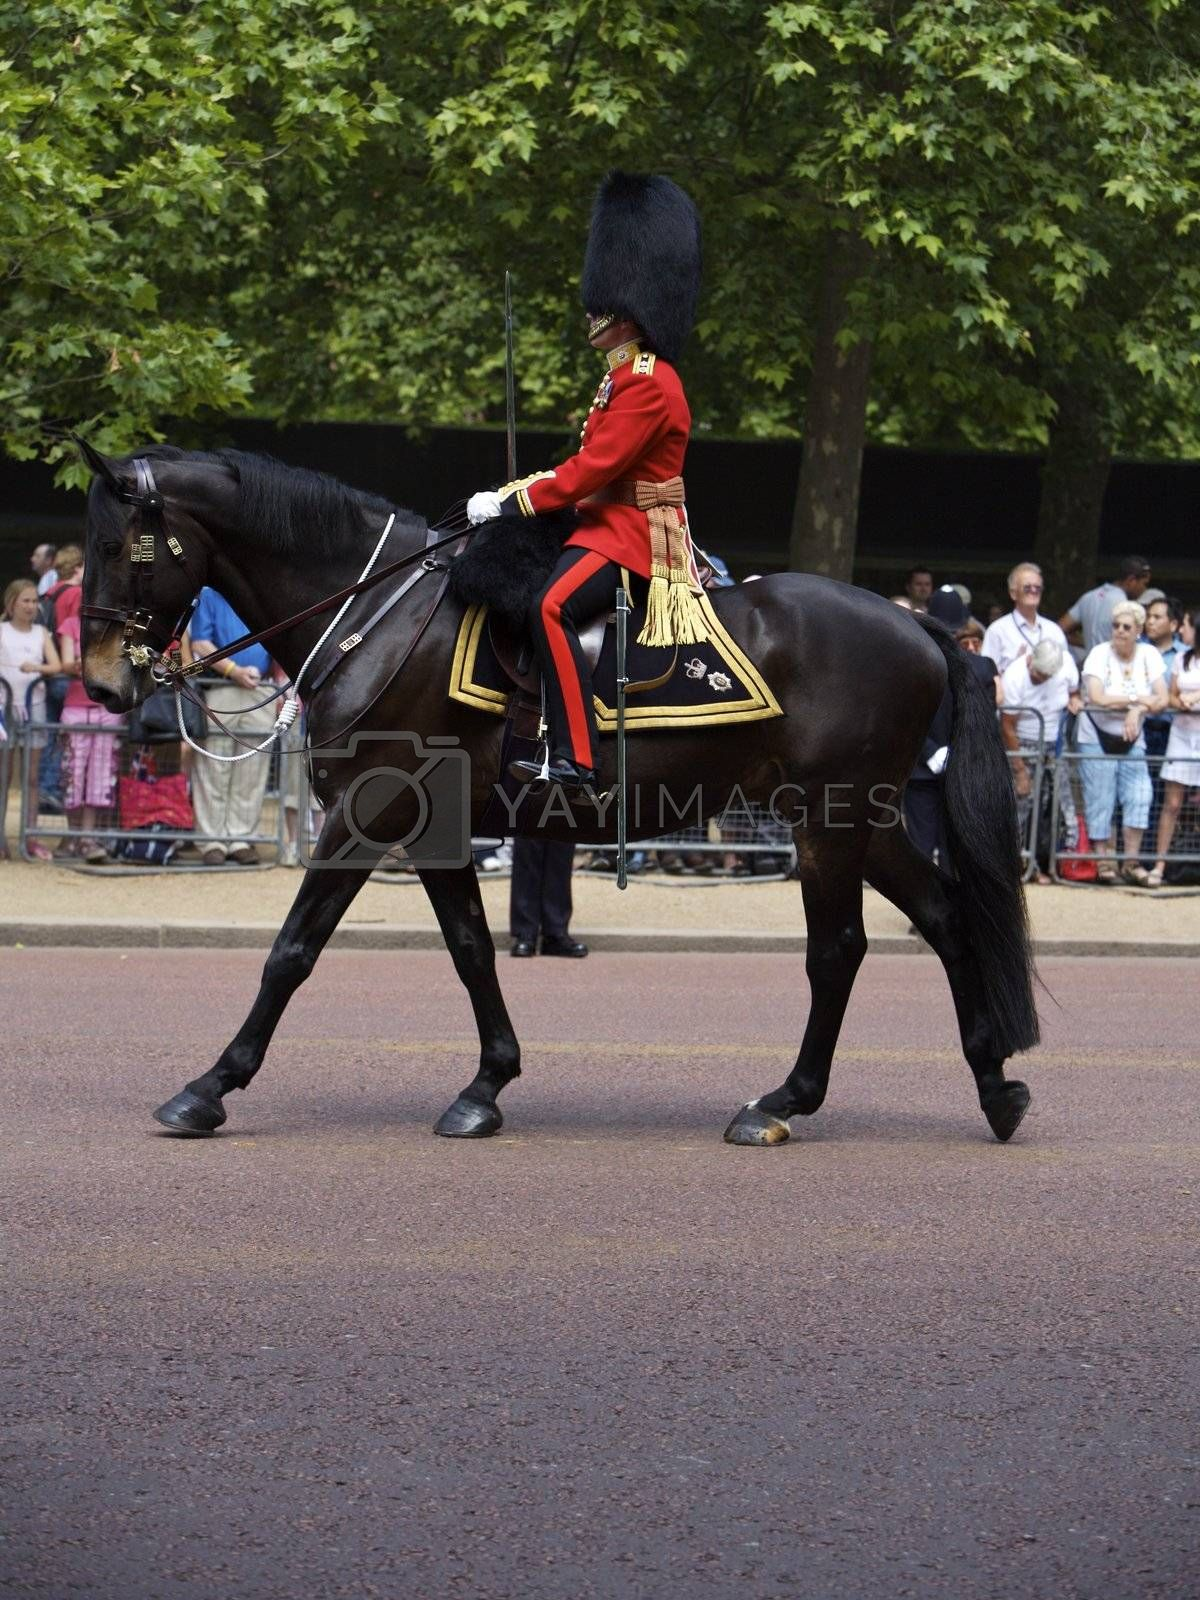 Trooping of the Colors for the Queen's Birthday one of London's Most Popular Annual Royal Events